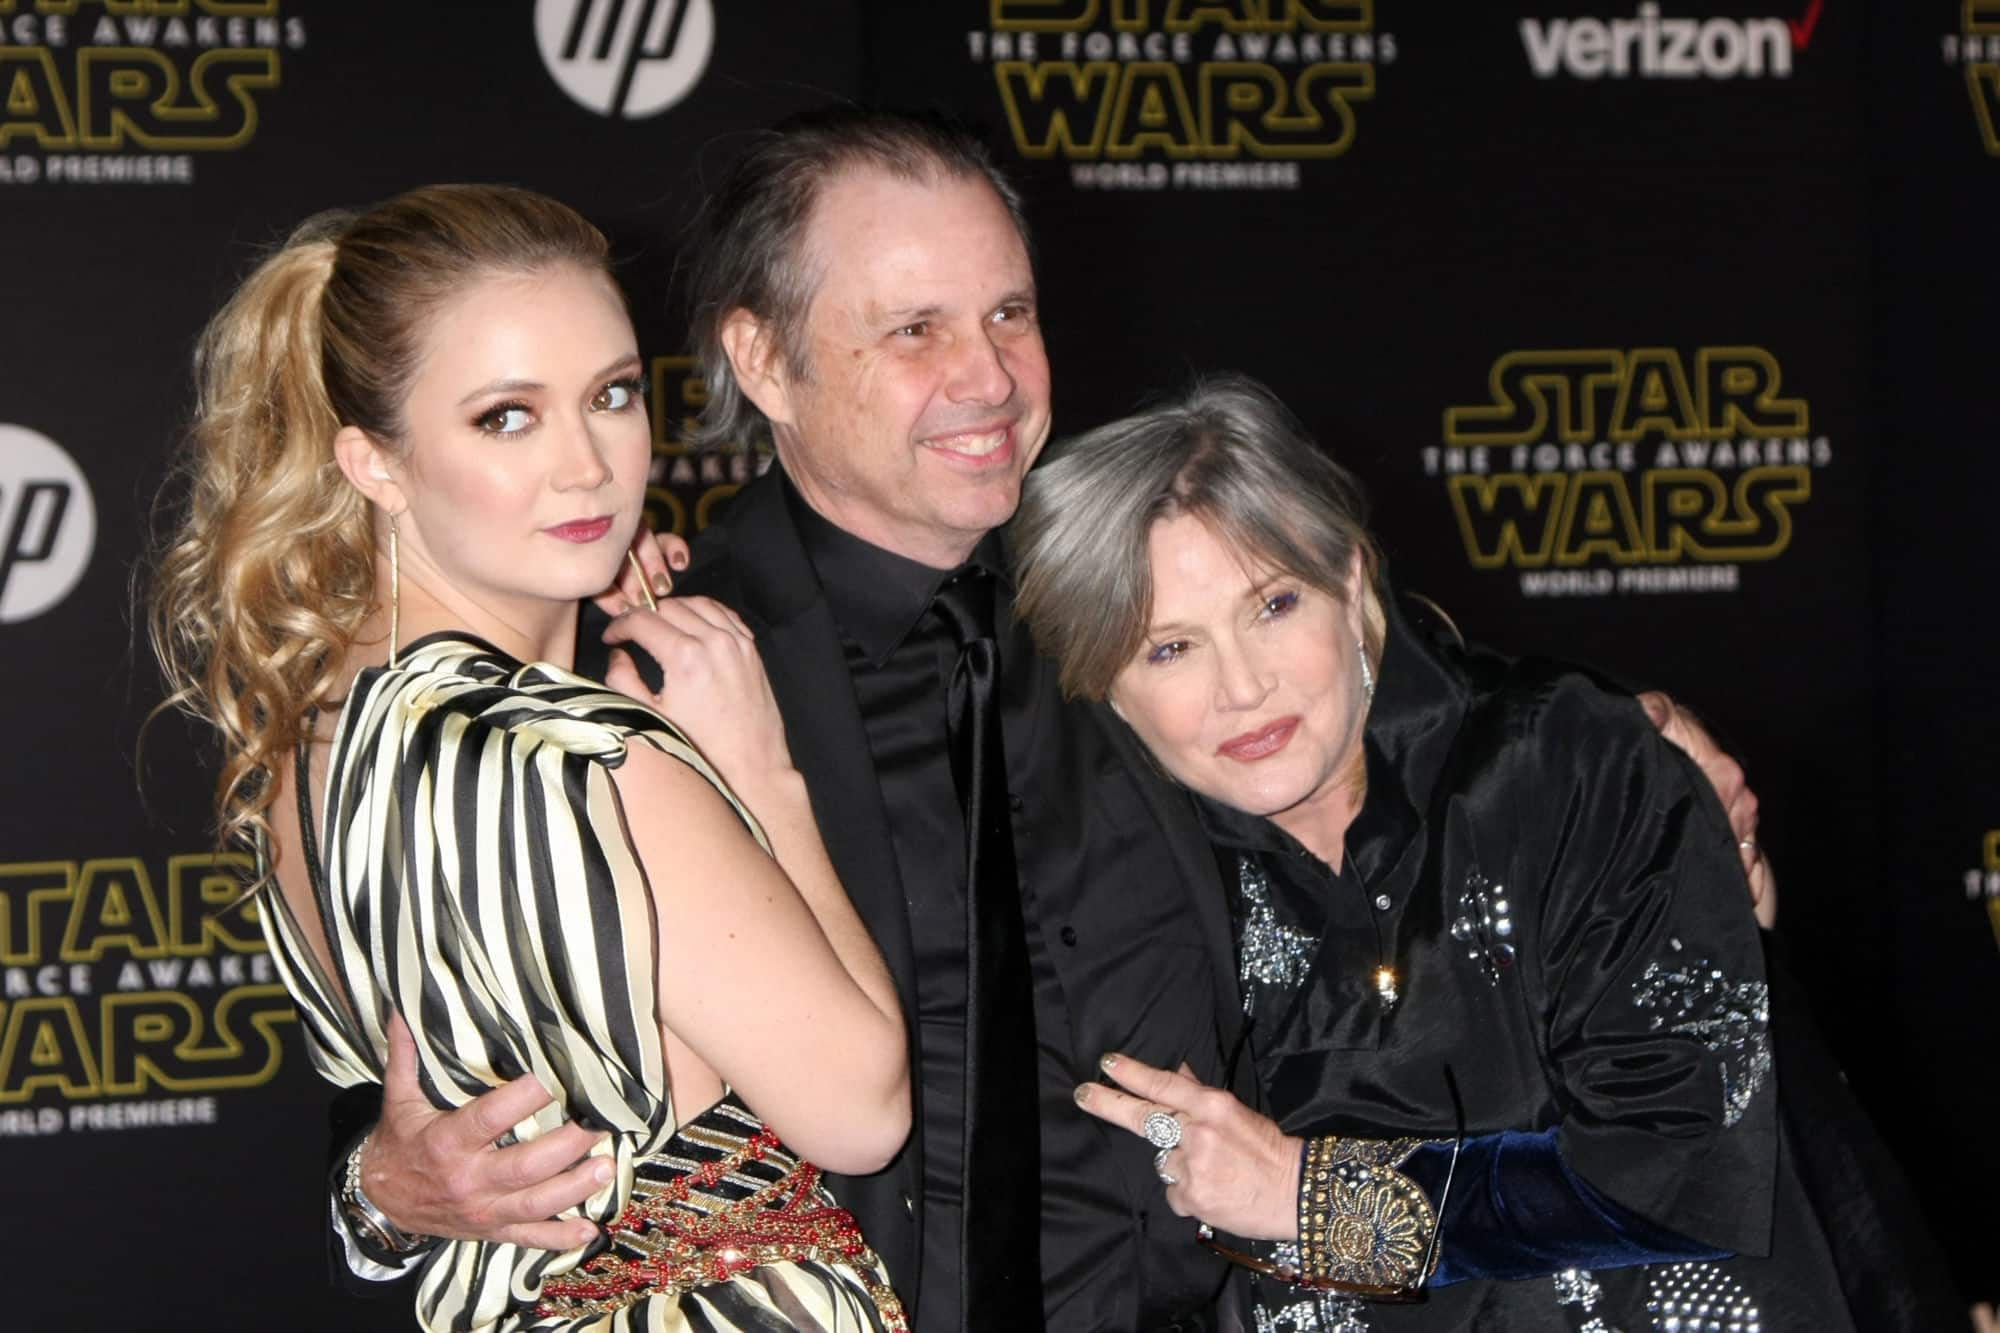 Billie Lourd, Todd Fisher, Carrie Fisher